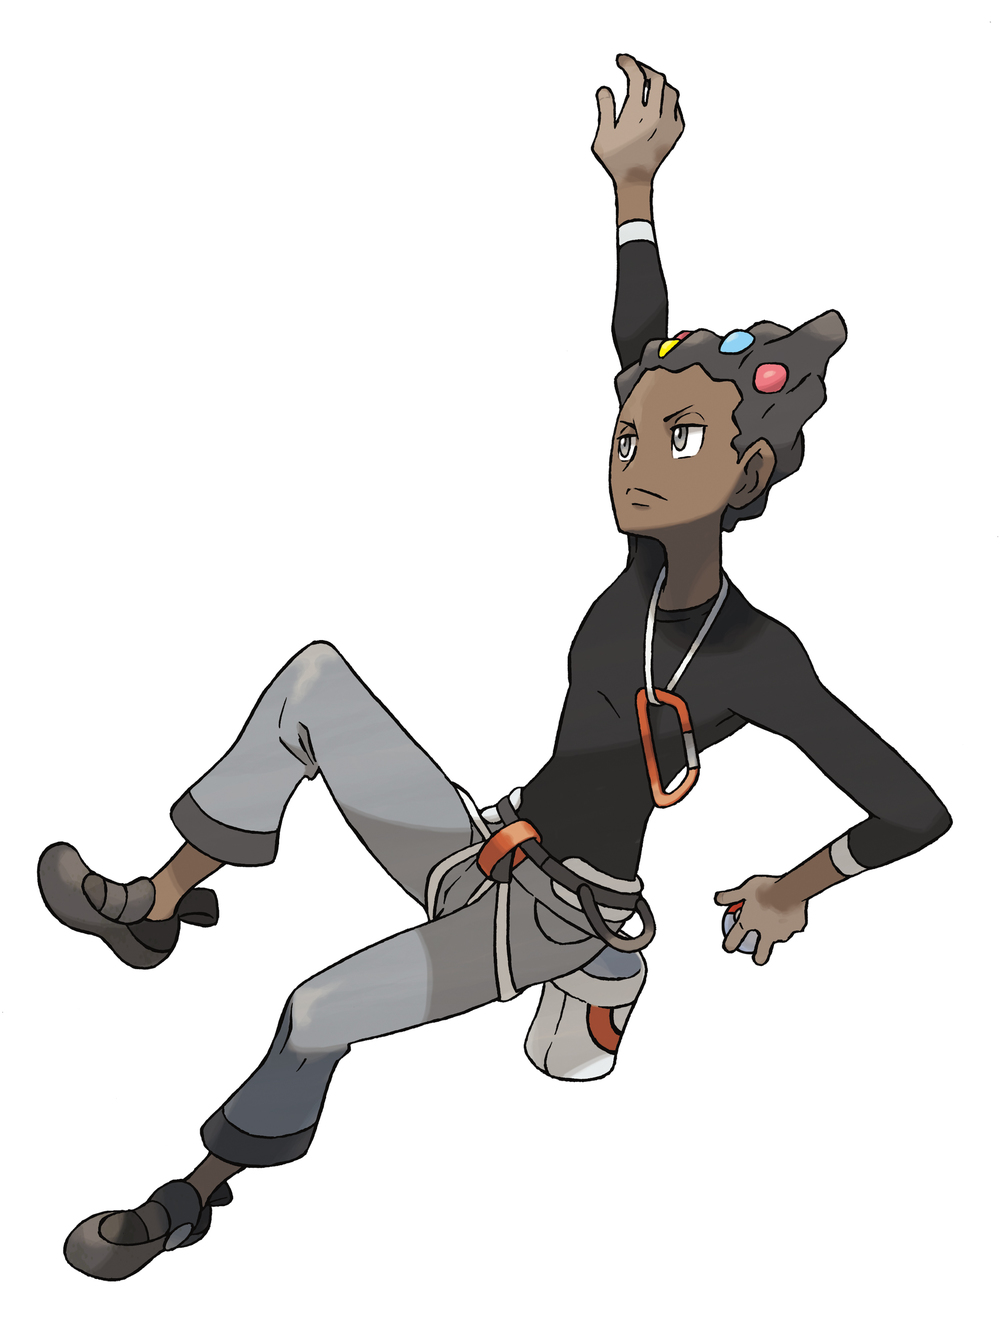 Gym Leader Grant_official art_300dpi.jpg